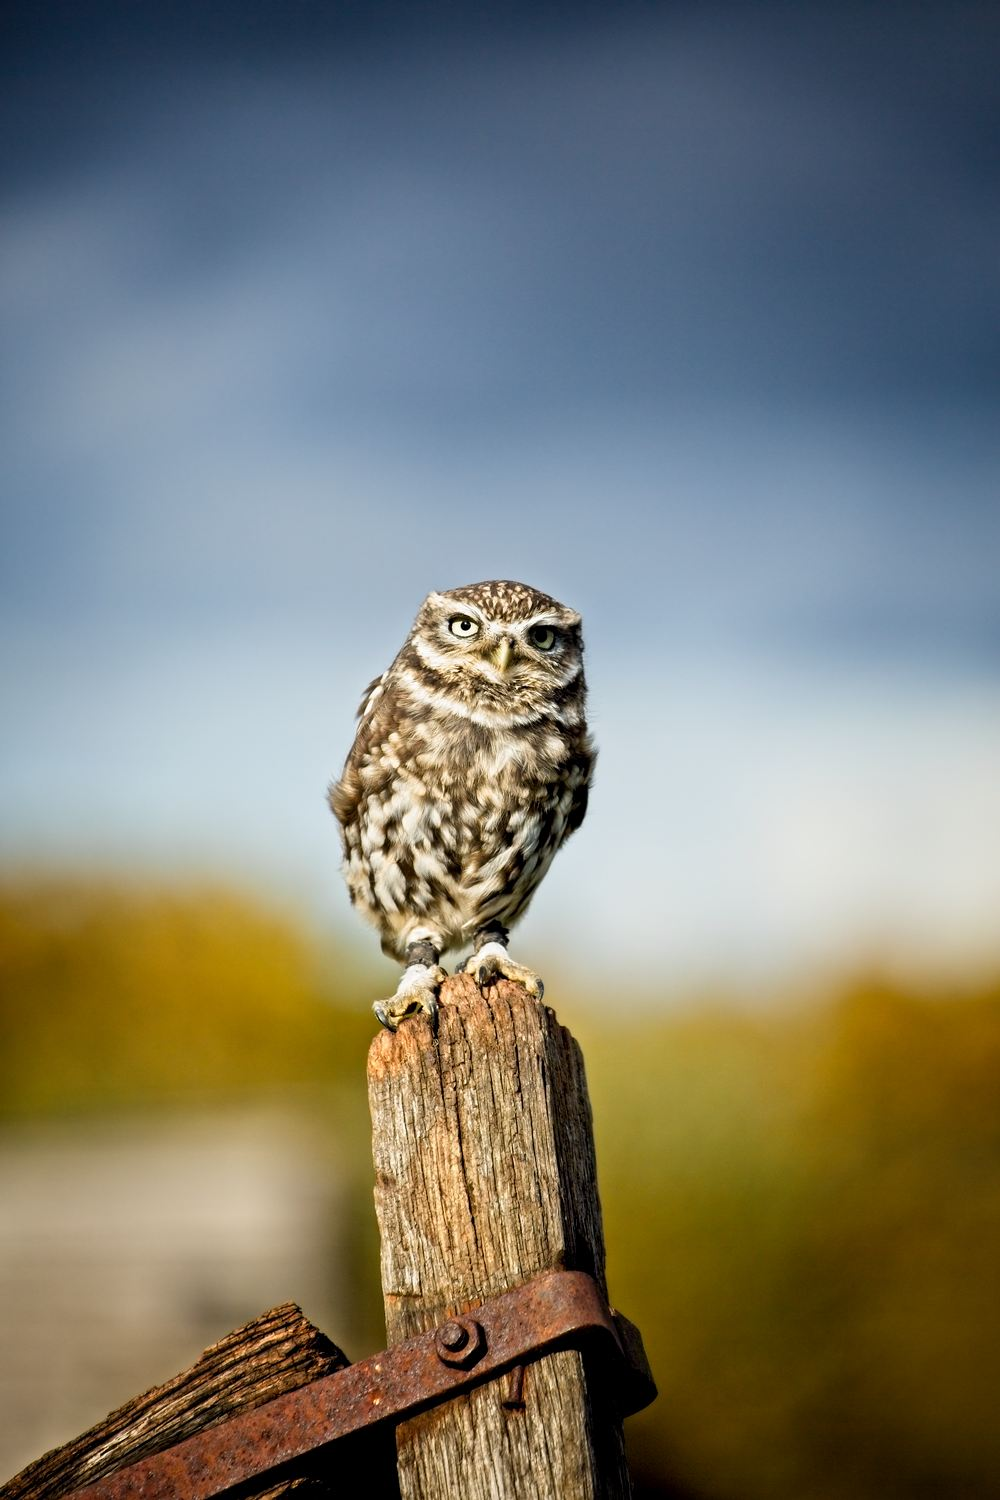 Little Owl … - This is Scrappy, a Little Owl. He's tiny, around 7 inches high. Tip: you can bring quite a lot of variety into images by shifting your position relative to your subject – enabling you to experiment with different lighting patterns and different backgrounds. I took quite a few pictures of Scrappy, he's a bit of a poser.